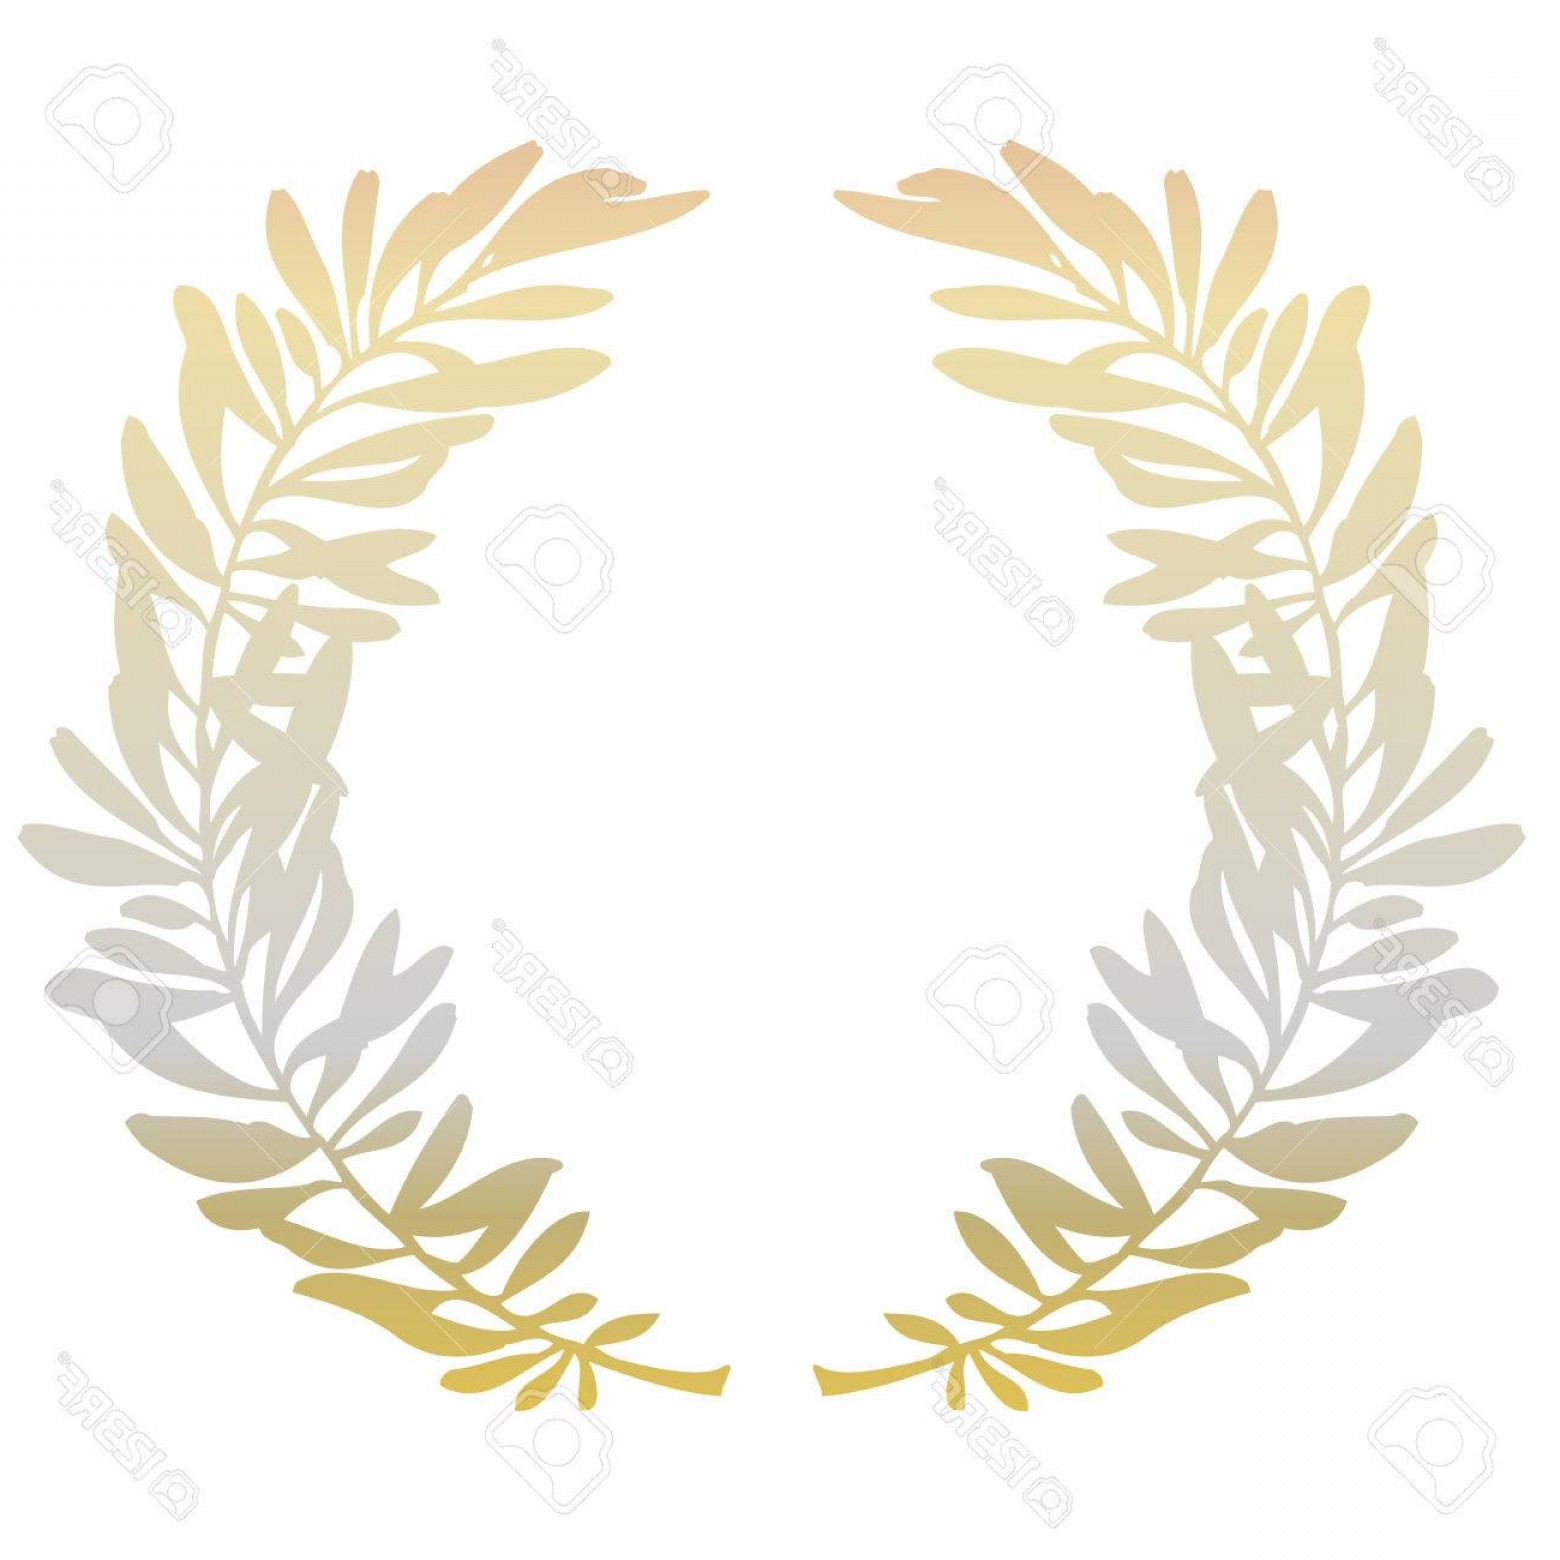 1560x1560 Photostock Vector Golden Olive Branches Or Laurel Wreath On White